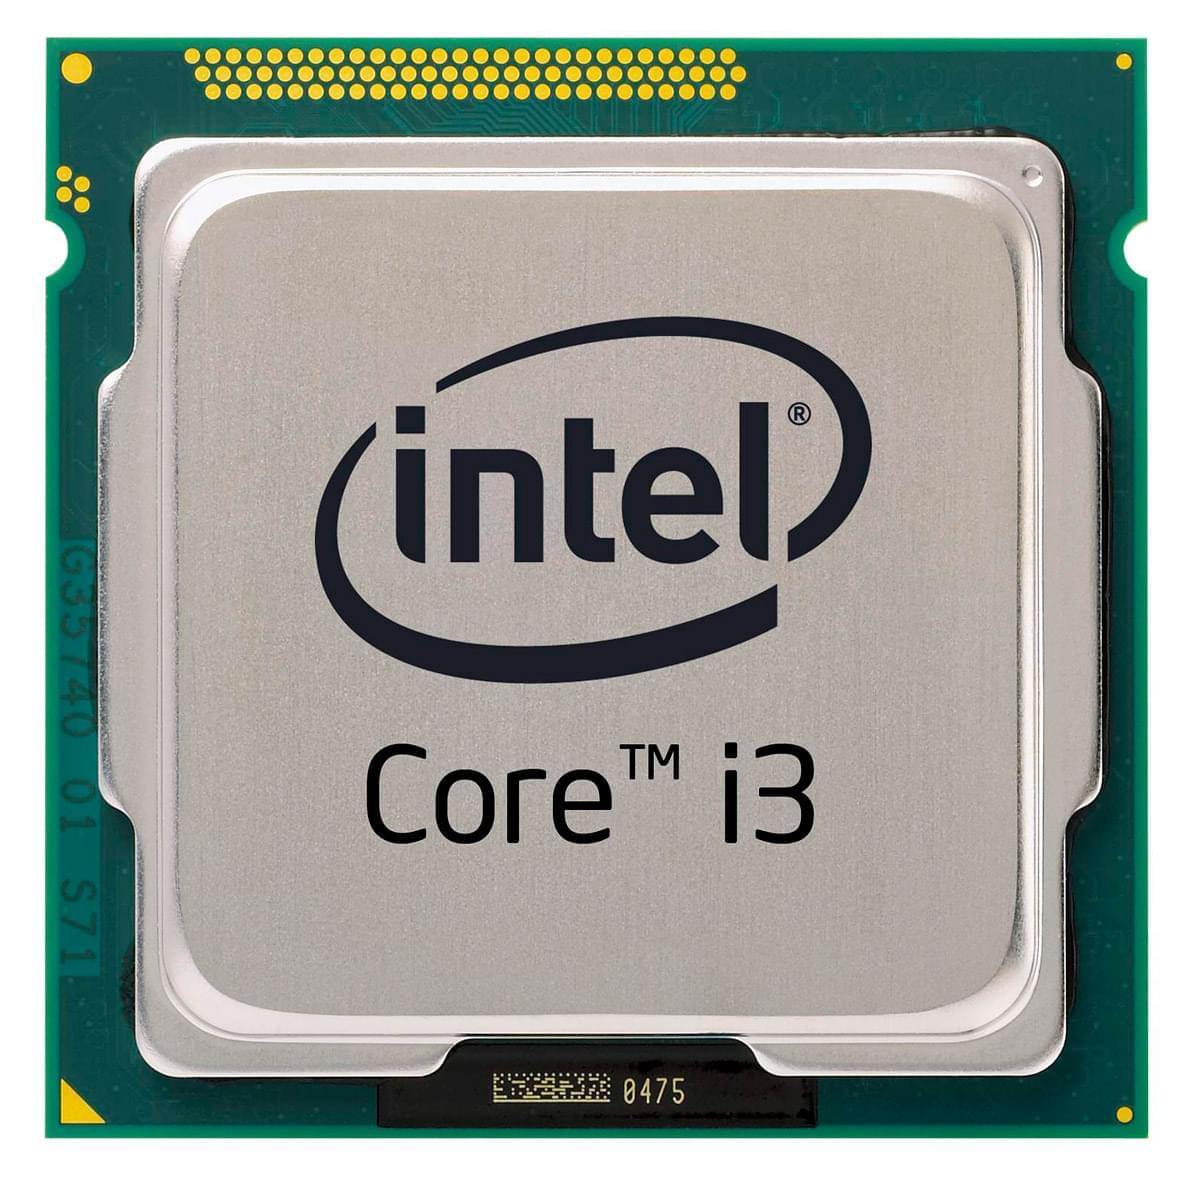 Intel Core i3 3220 - 3.3GHz - Processeur Intel - Cybertek.fr - 0